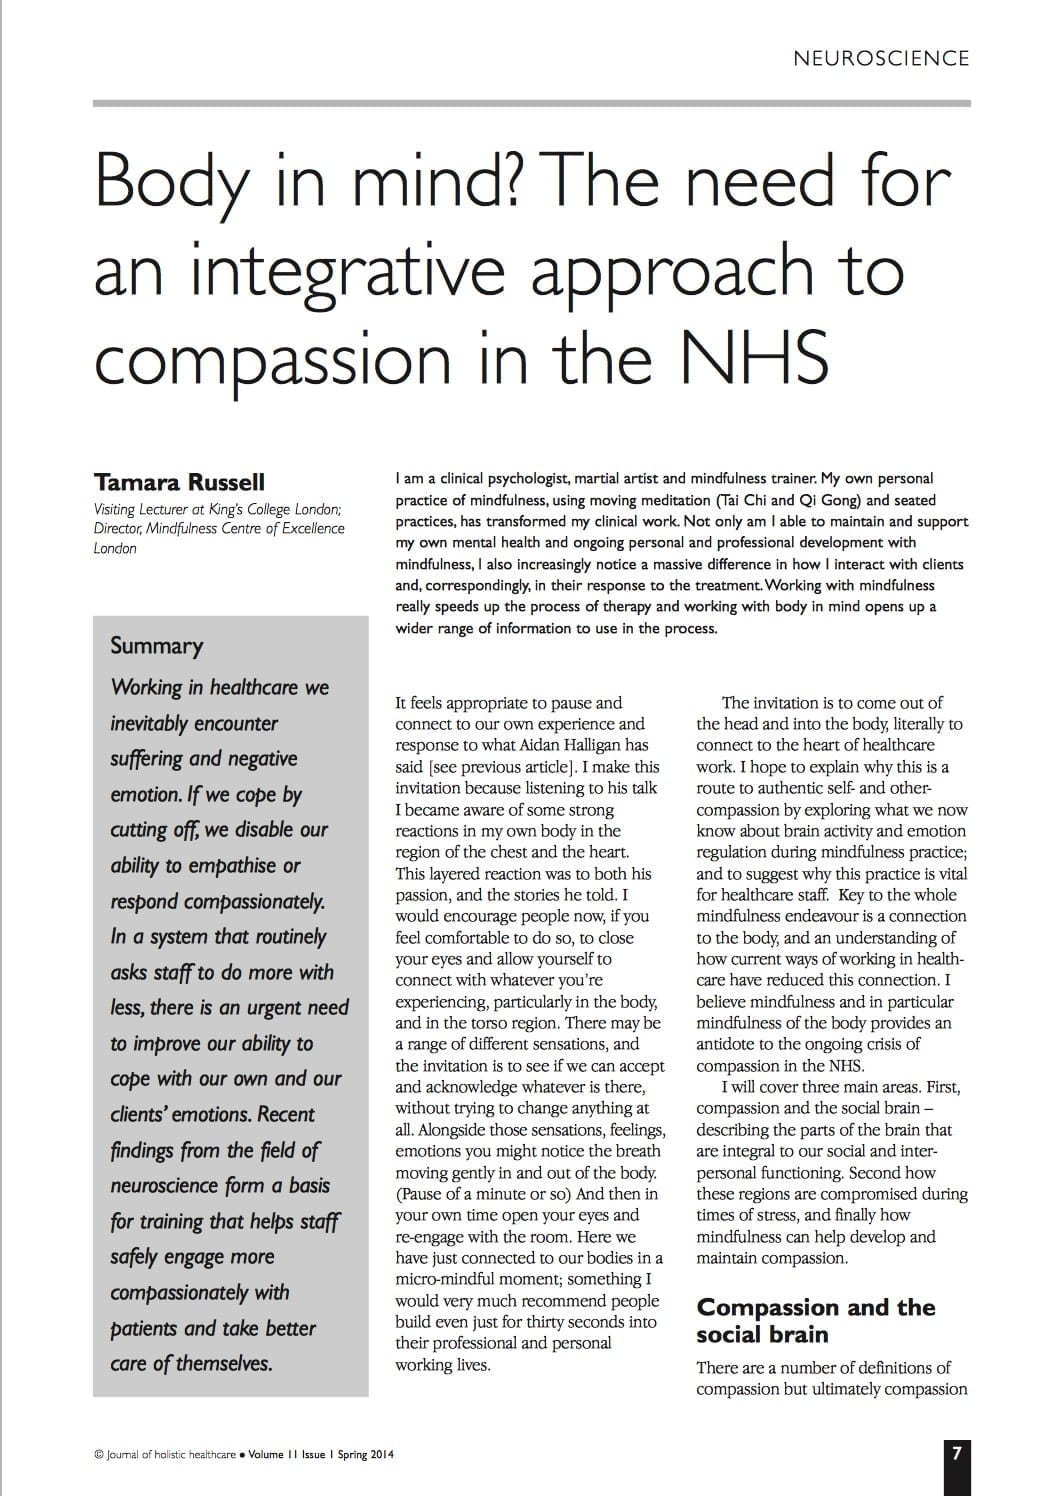 11.1.2 integrative compassion in NHS